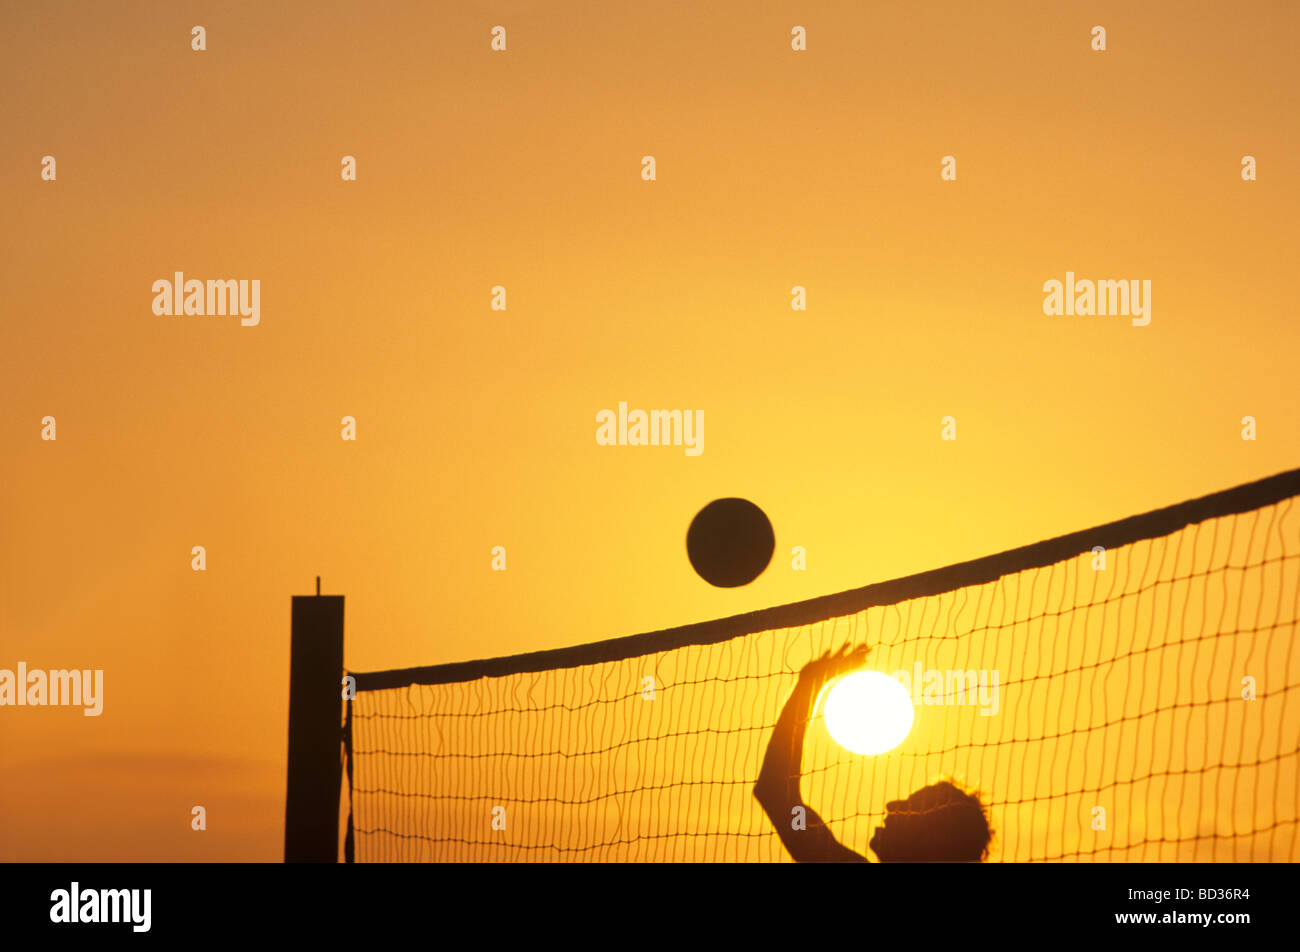 Royalty Free Nude Volleyball Players Pictures, Images and